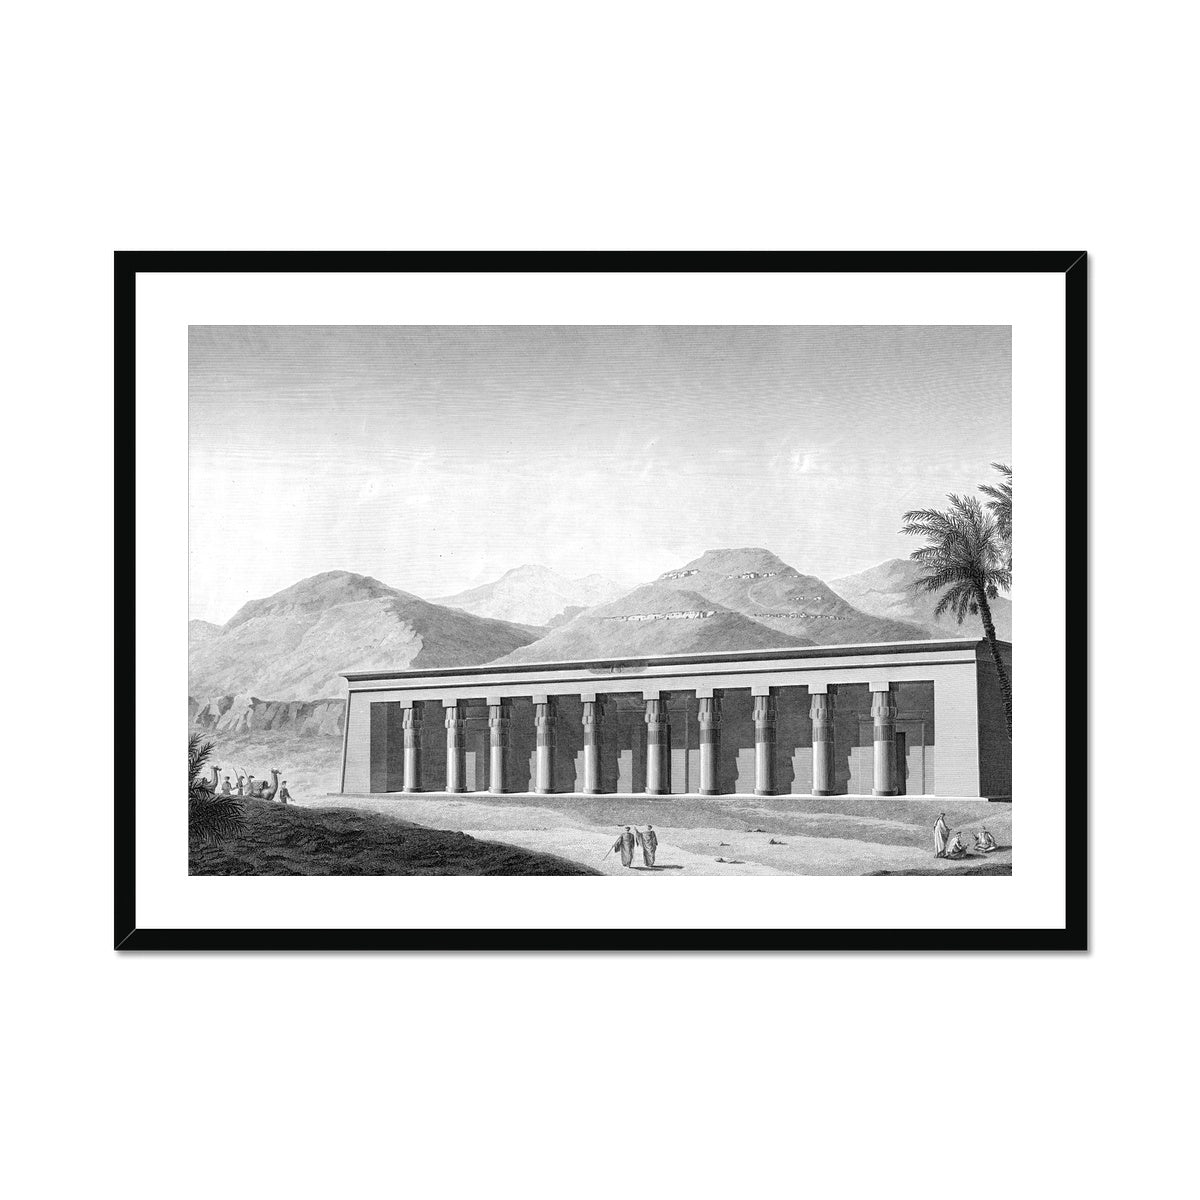 View of the Palace - Qournah - Thebes Egypt -  Framed & Mounted Print